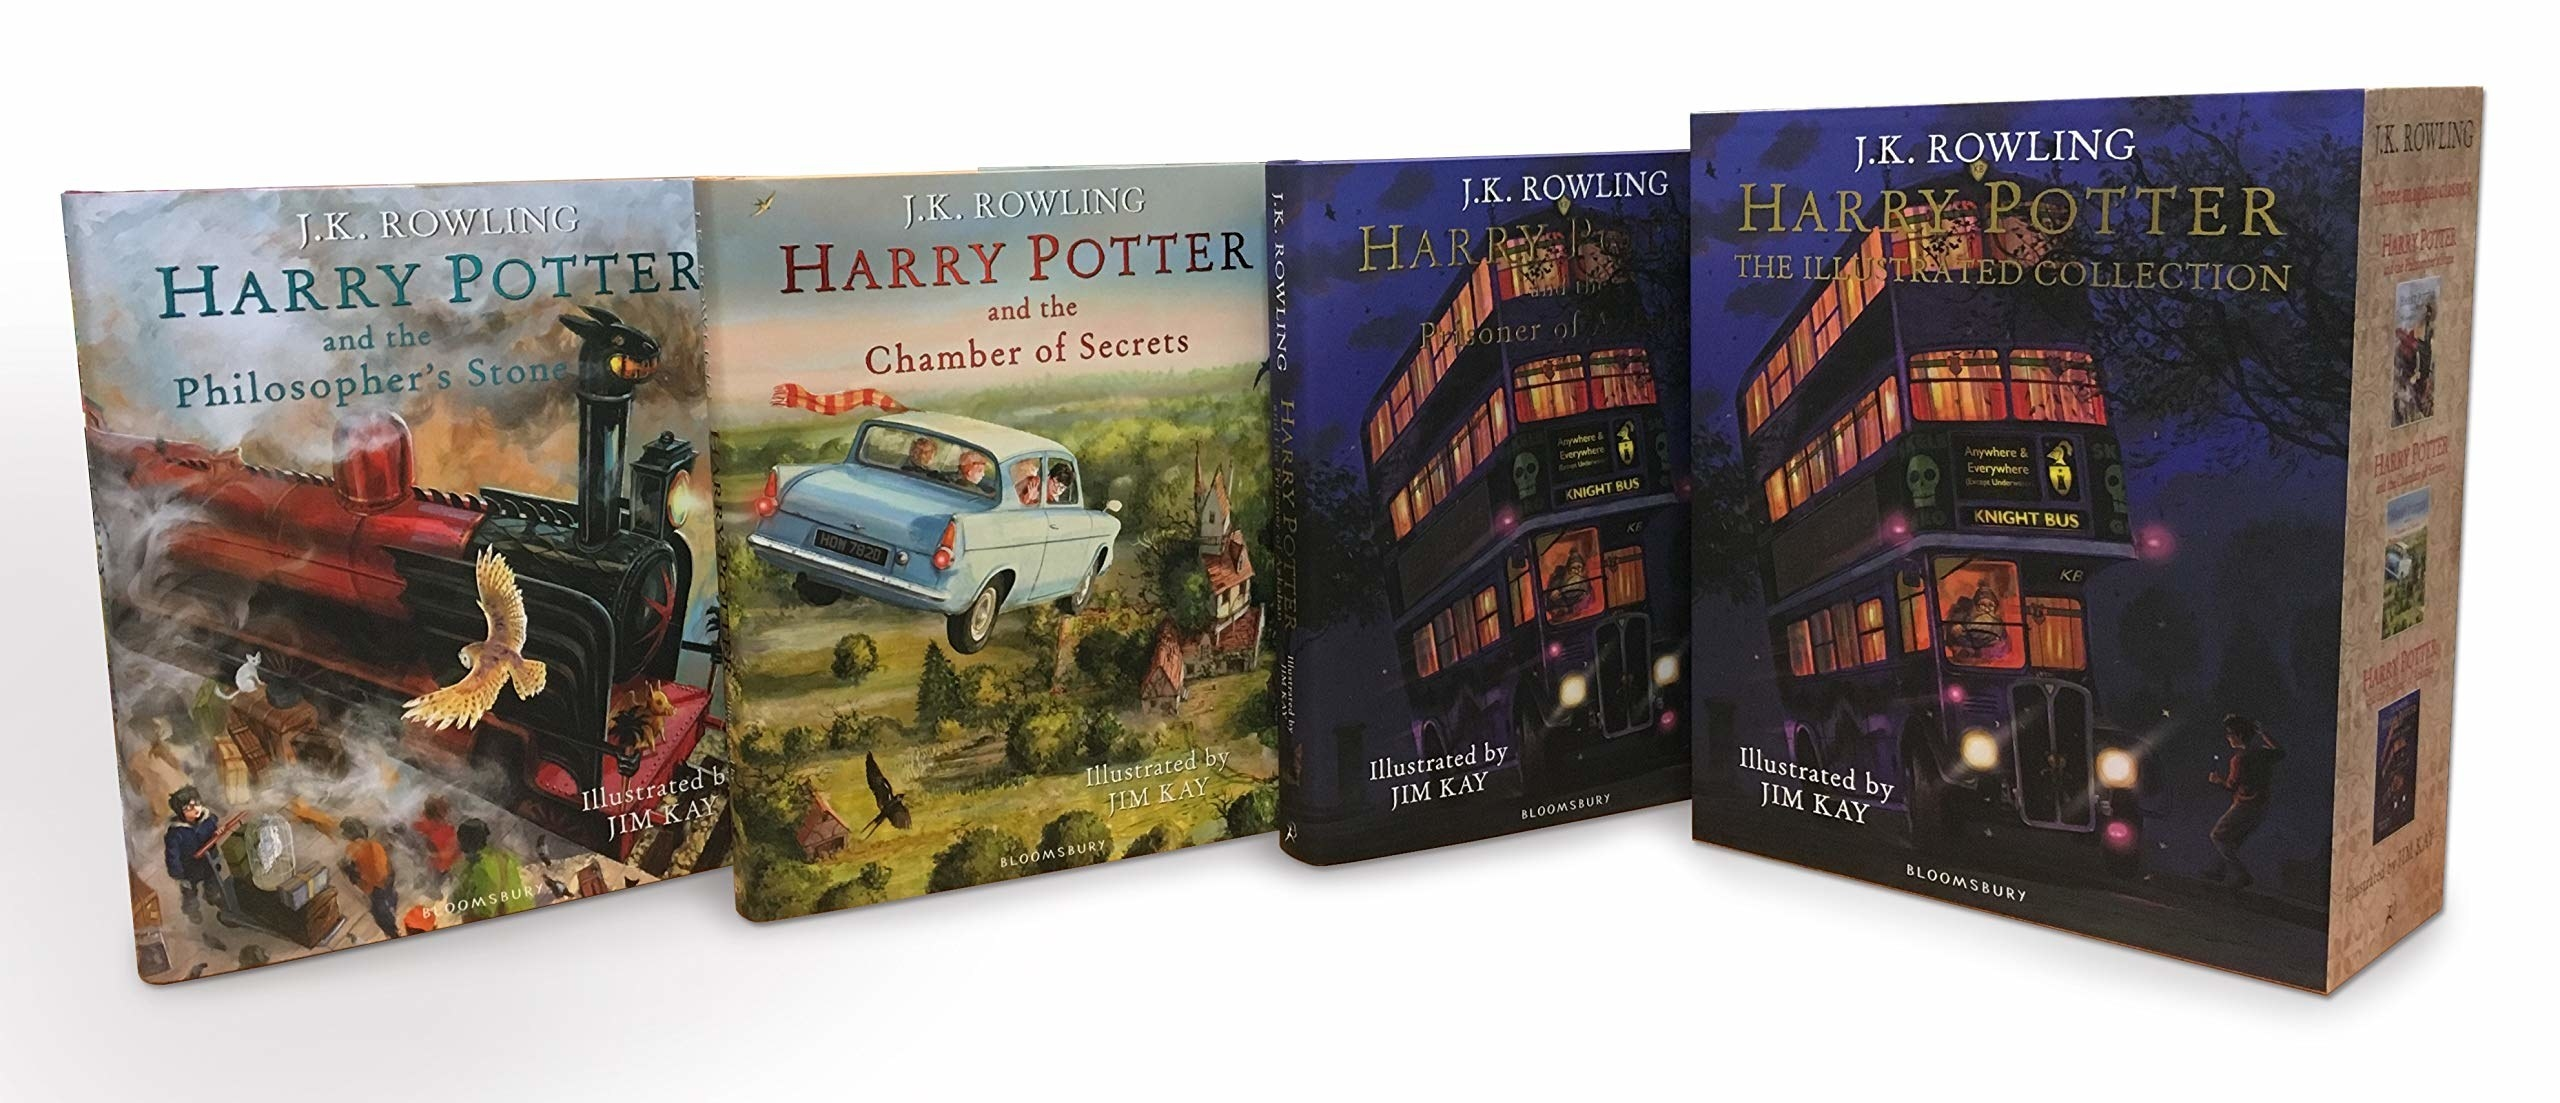 An illustrated hardcover collection of the first 3 books in the Harry Potter series.